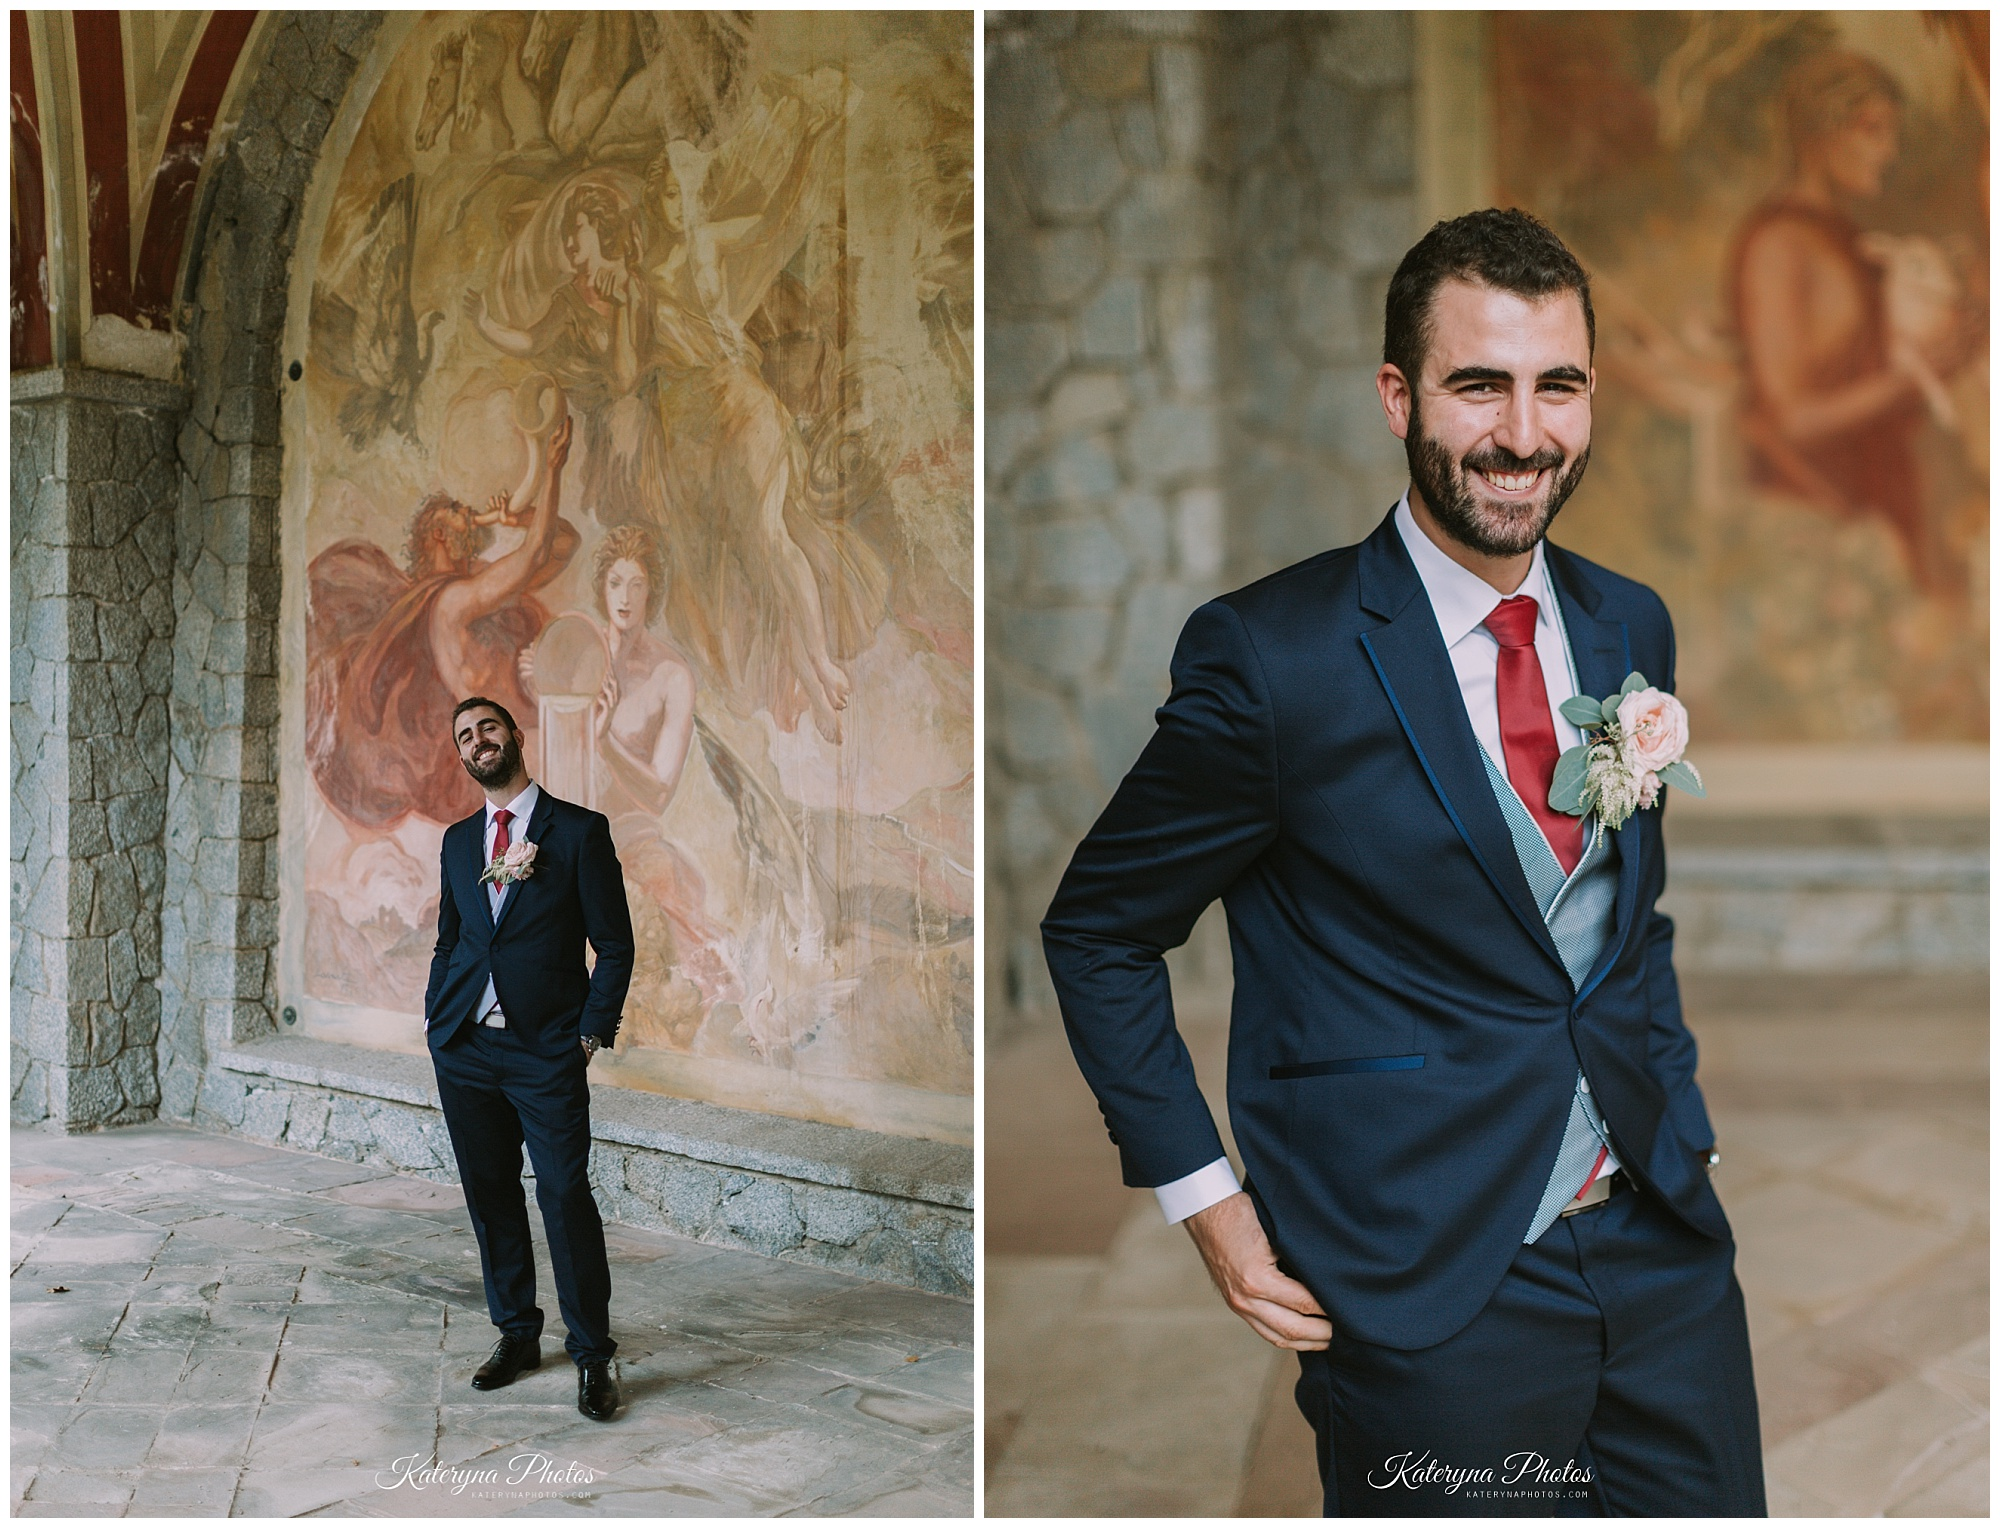 Kateryna-photos-wedding-photographer-in-barcelona-boda--bell-reco-catalunya_ceremony-in-a palace-0153.jpg